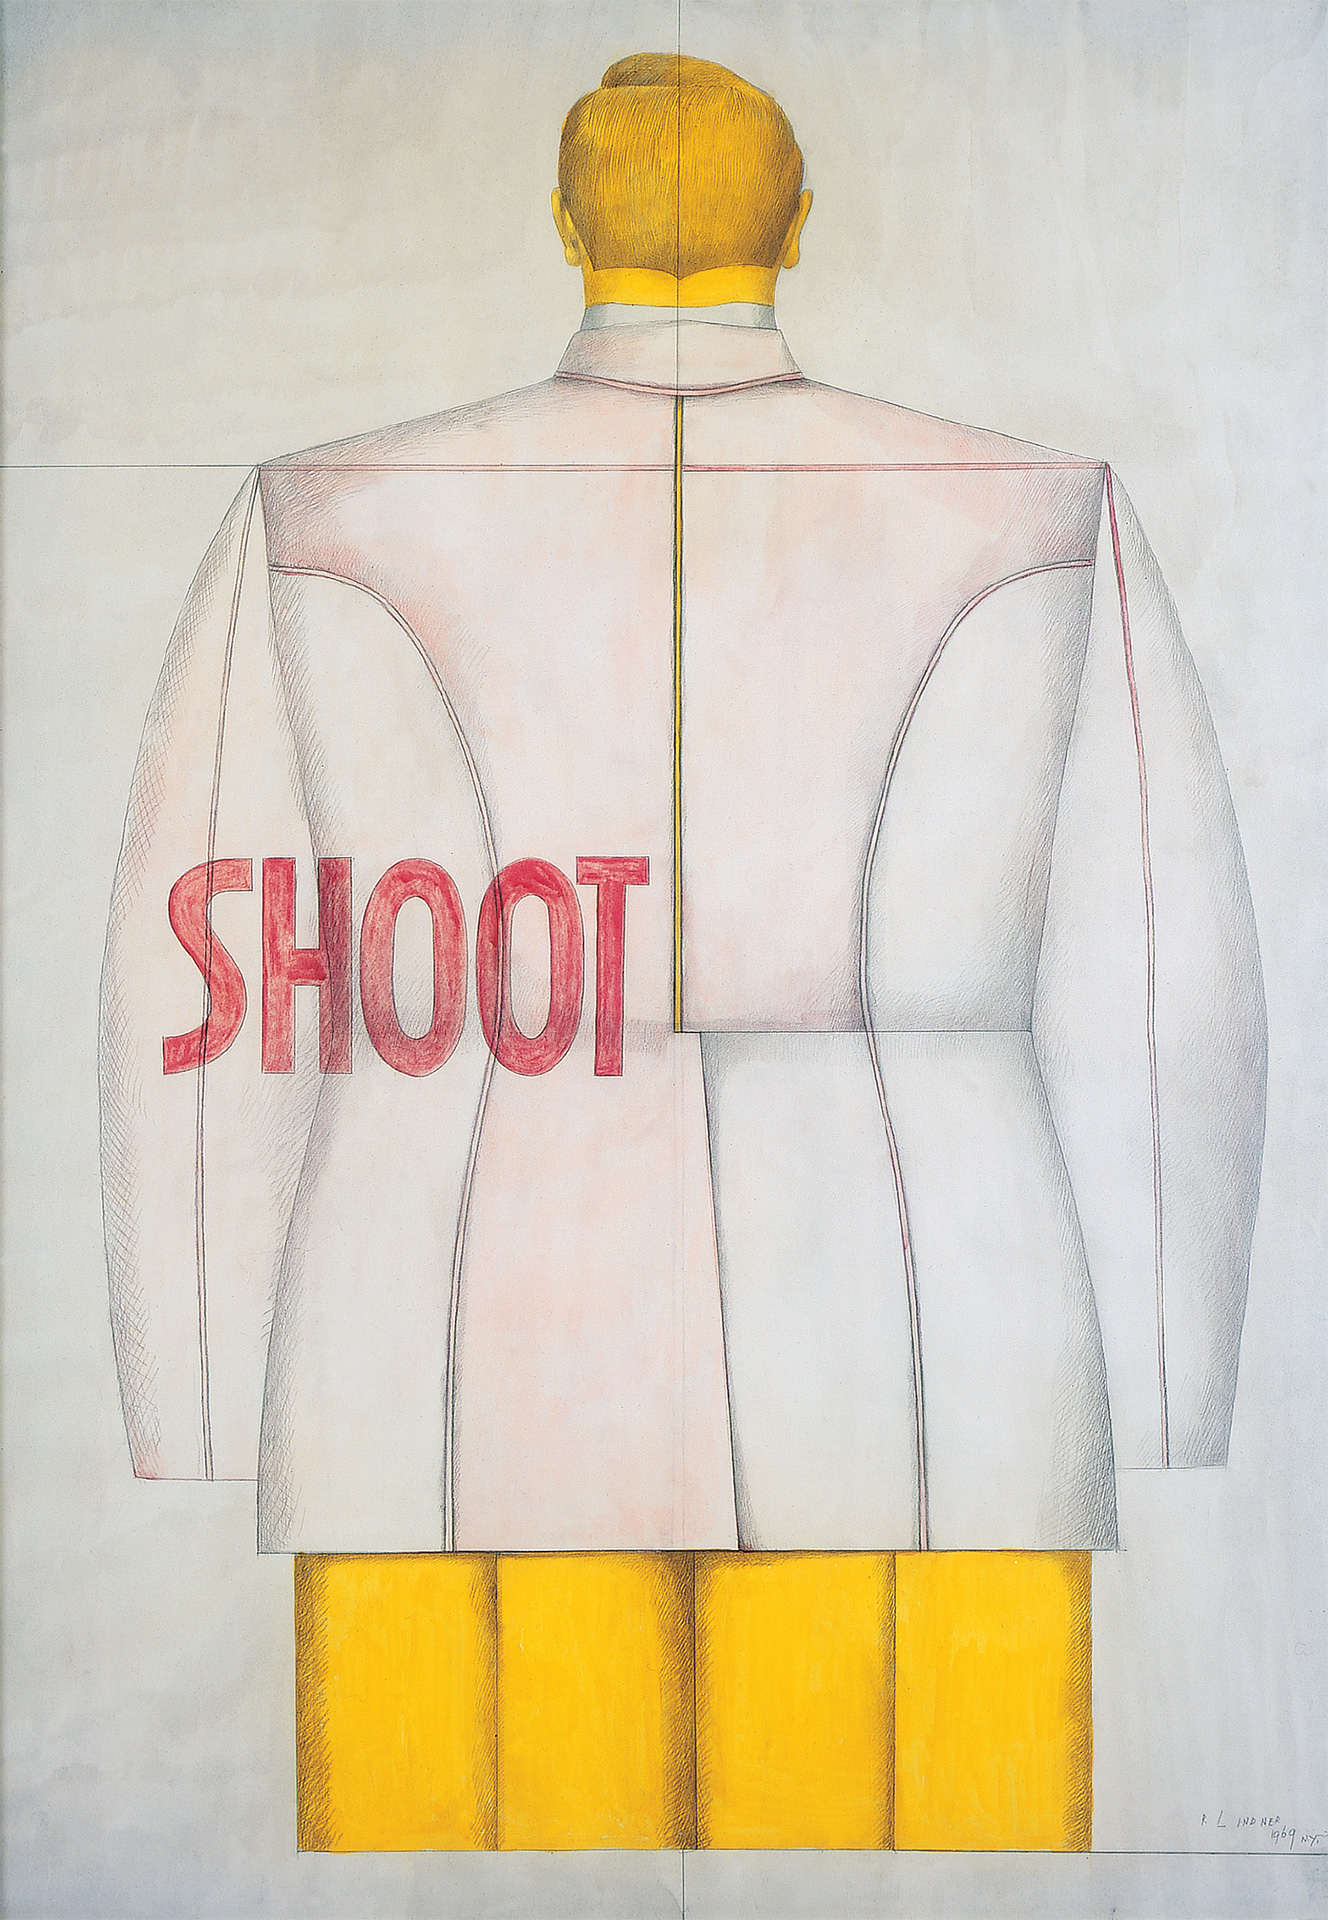 Shoot II, 1968-69